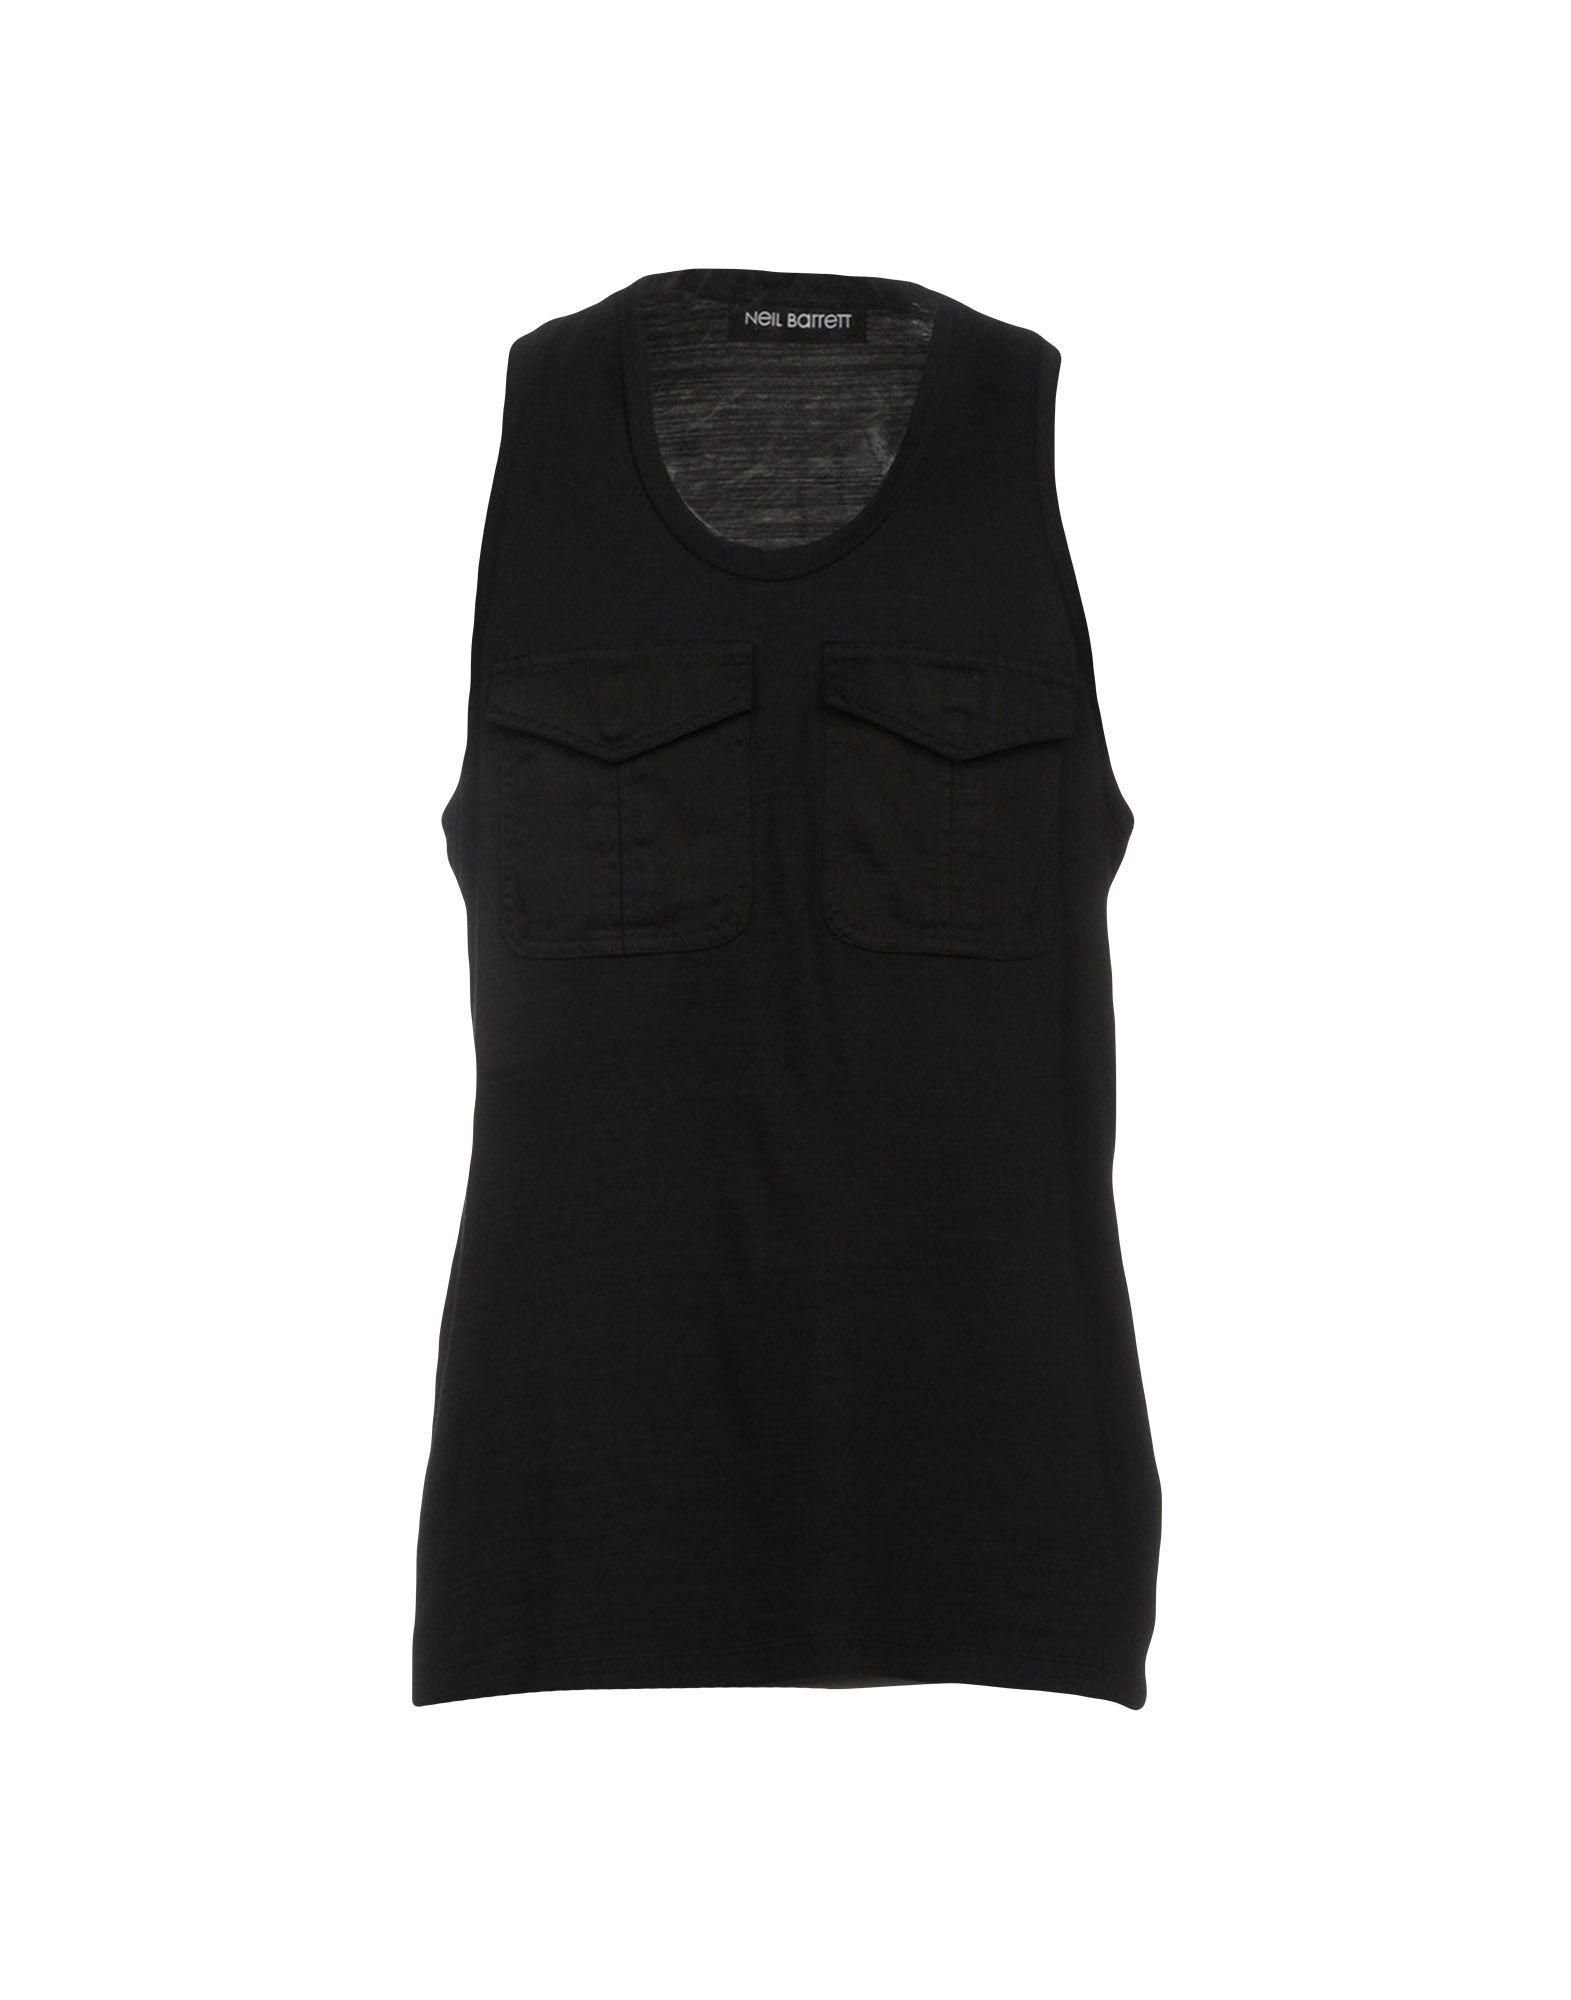 9991150d9c Lyst - Neil Barrett Vest in Black